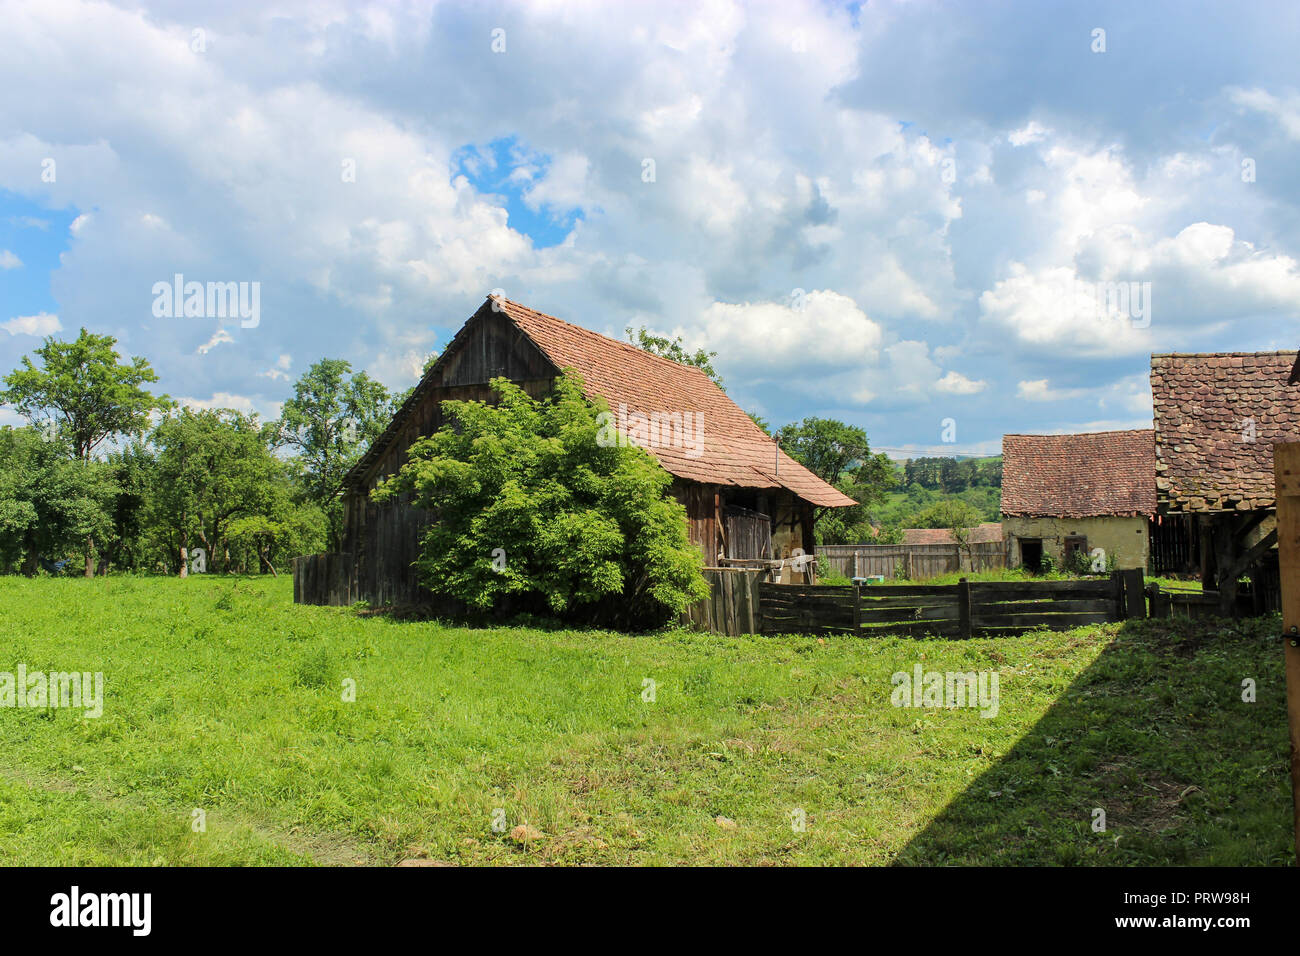 Old Saxon Rural House In Romanian Countryside - Stock Image